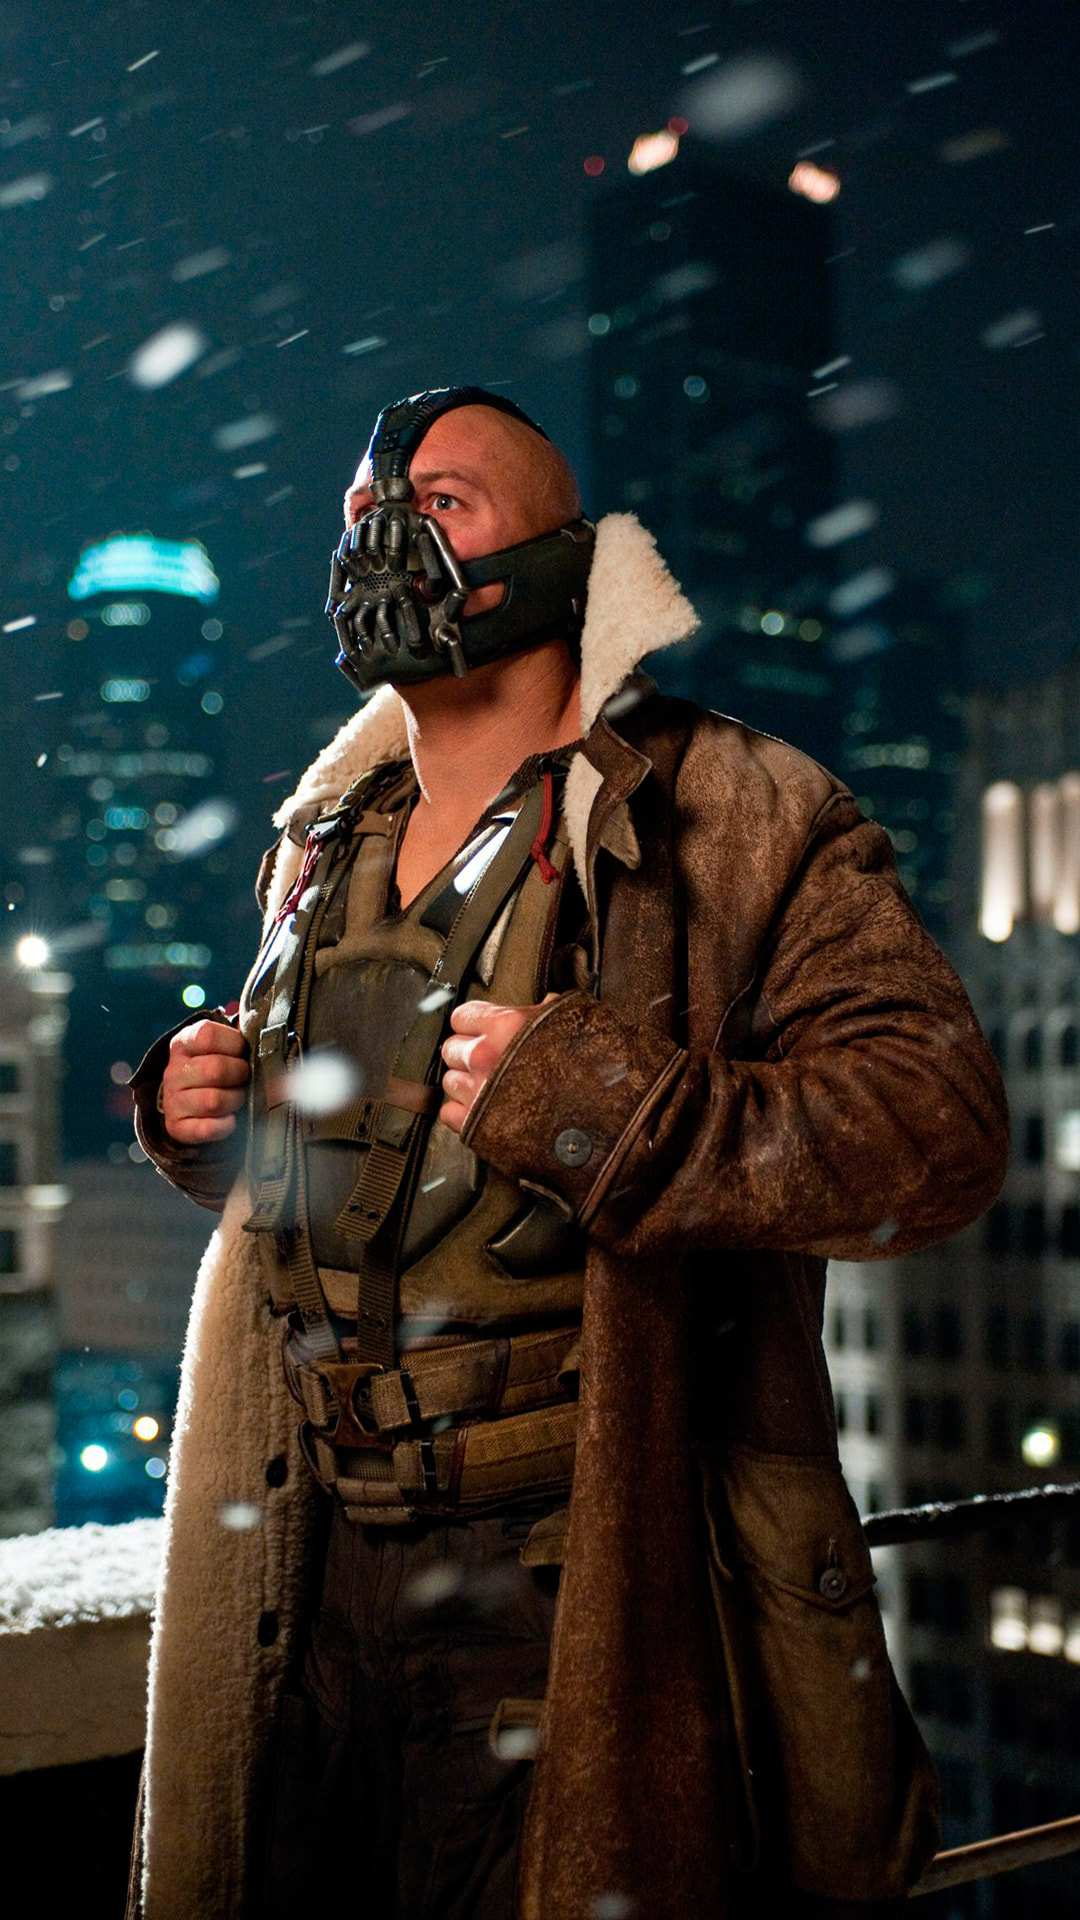 Bane Supervillain iPhone Wallpaper